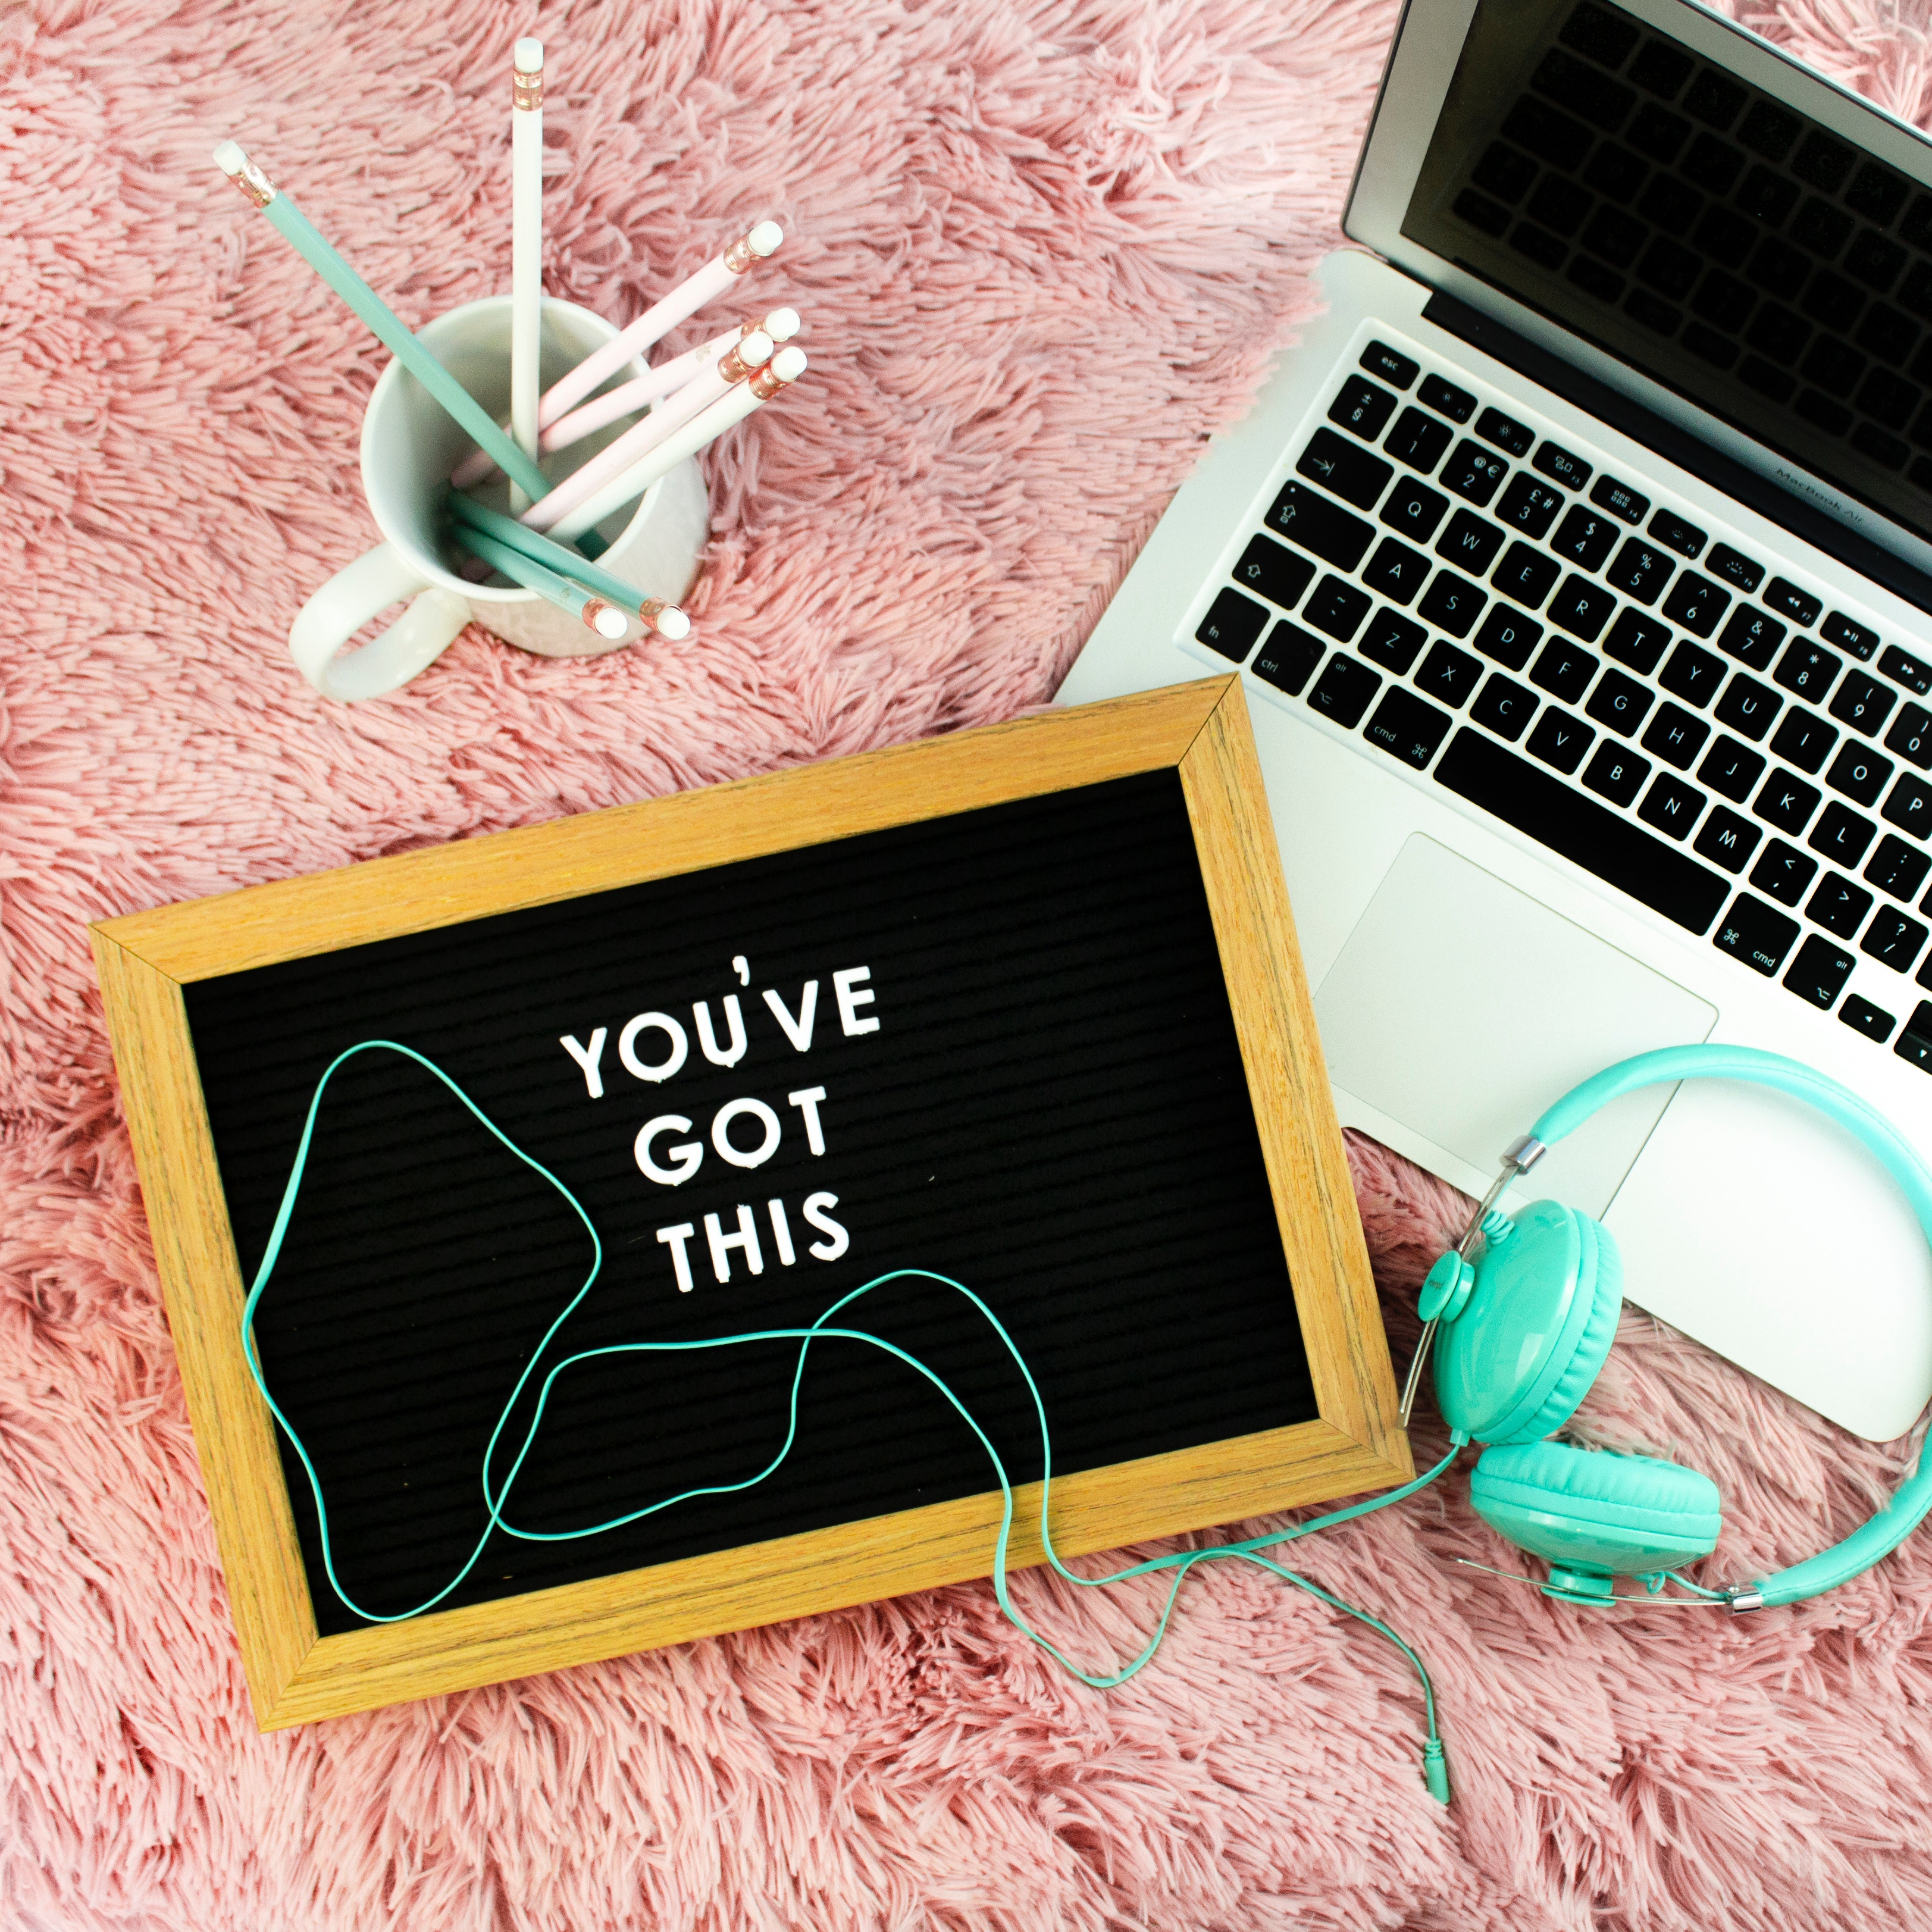 "A laptop, mug of pencils, headphones, and a sign with the words ""You've got this"" sitting on a fluffy pink rug."